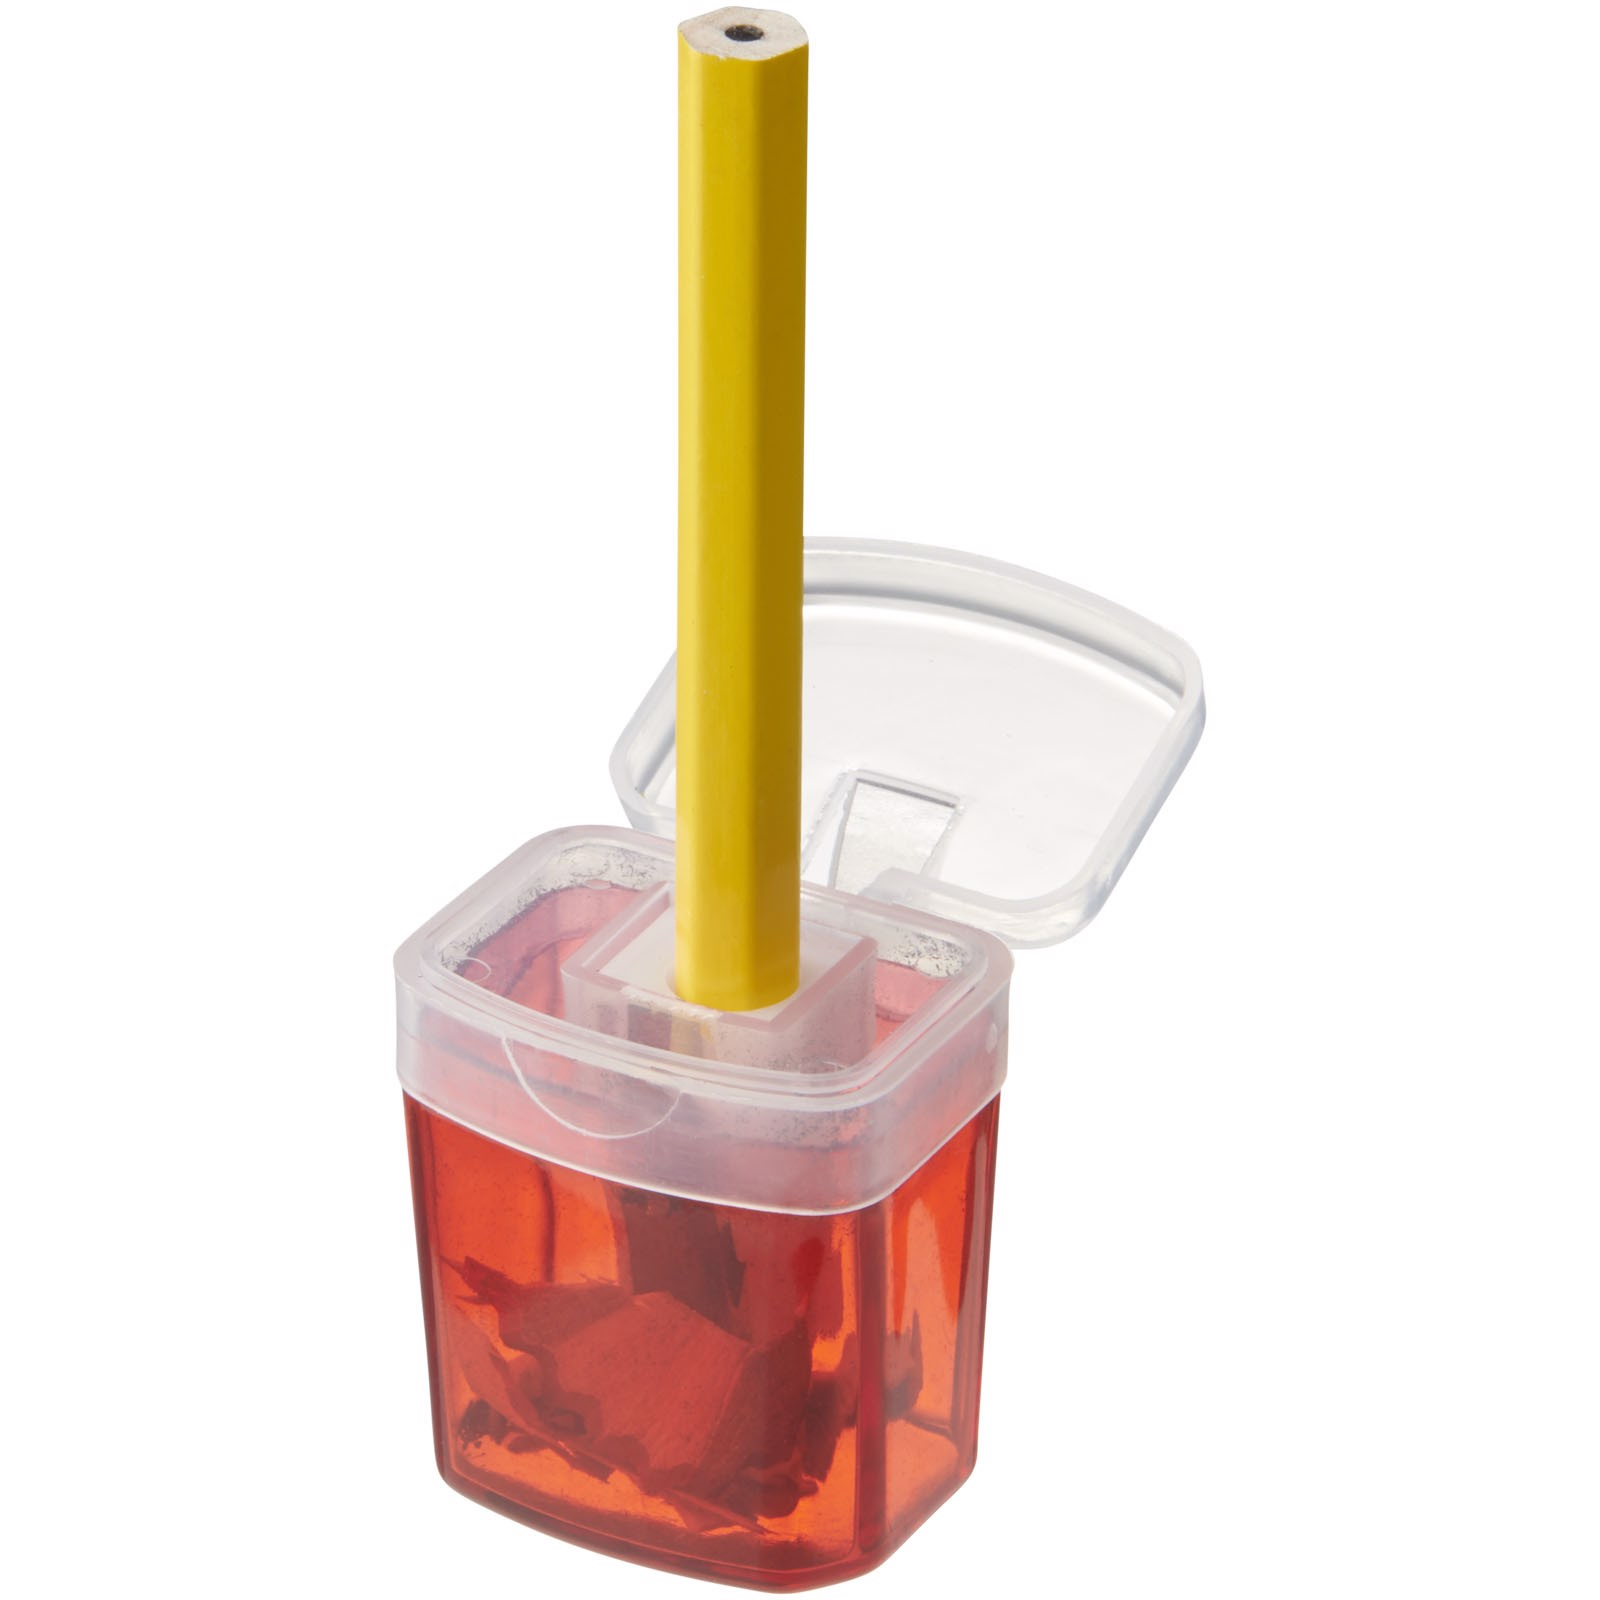 Sharpi sharpener with container - Red